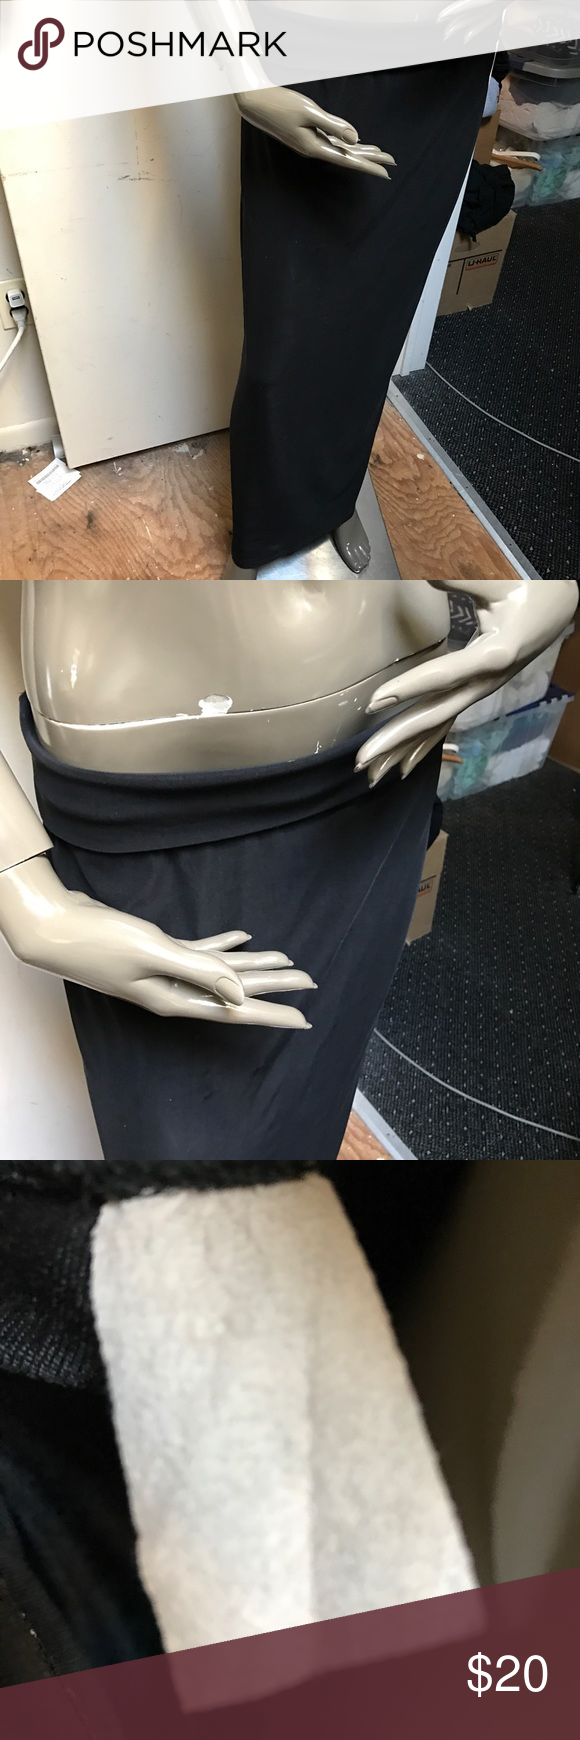 """Black skirt long with roll down waist band Super long curve hugging black skirt. Measures at waist band with band rolled down 16"""" un stretched 18 stretched approx 38 1/4 inches long with waist band rolled down. Approx 14 1/2 inch back slit.  As you can see label is blank. Skirts Maxi"""